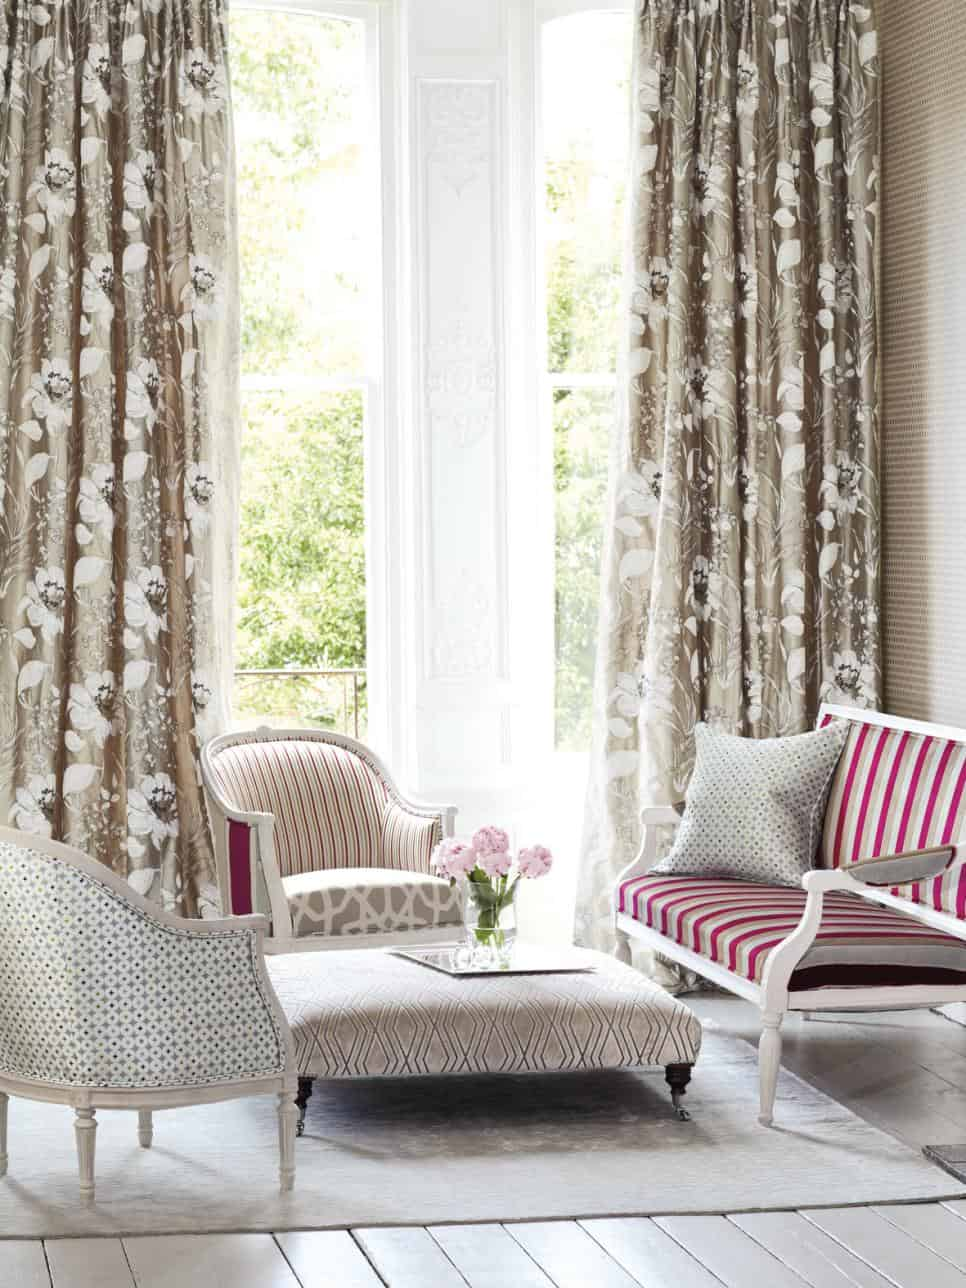 Trendy Ideas for Small Living Room Space on Living Room Drapes Ideas  id=28777